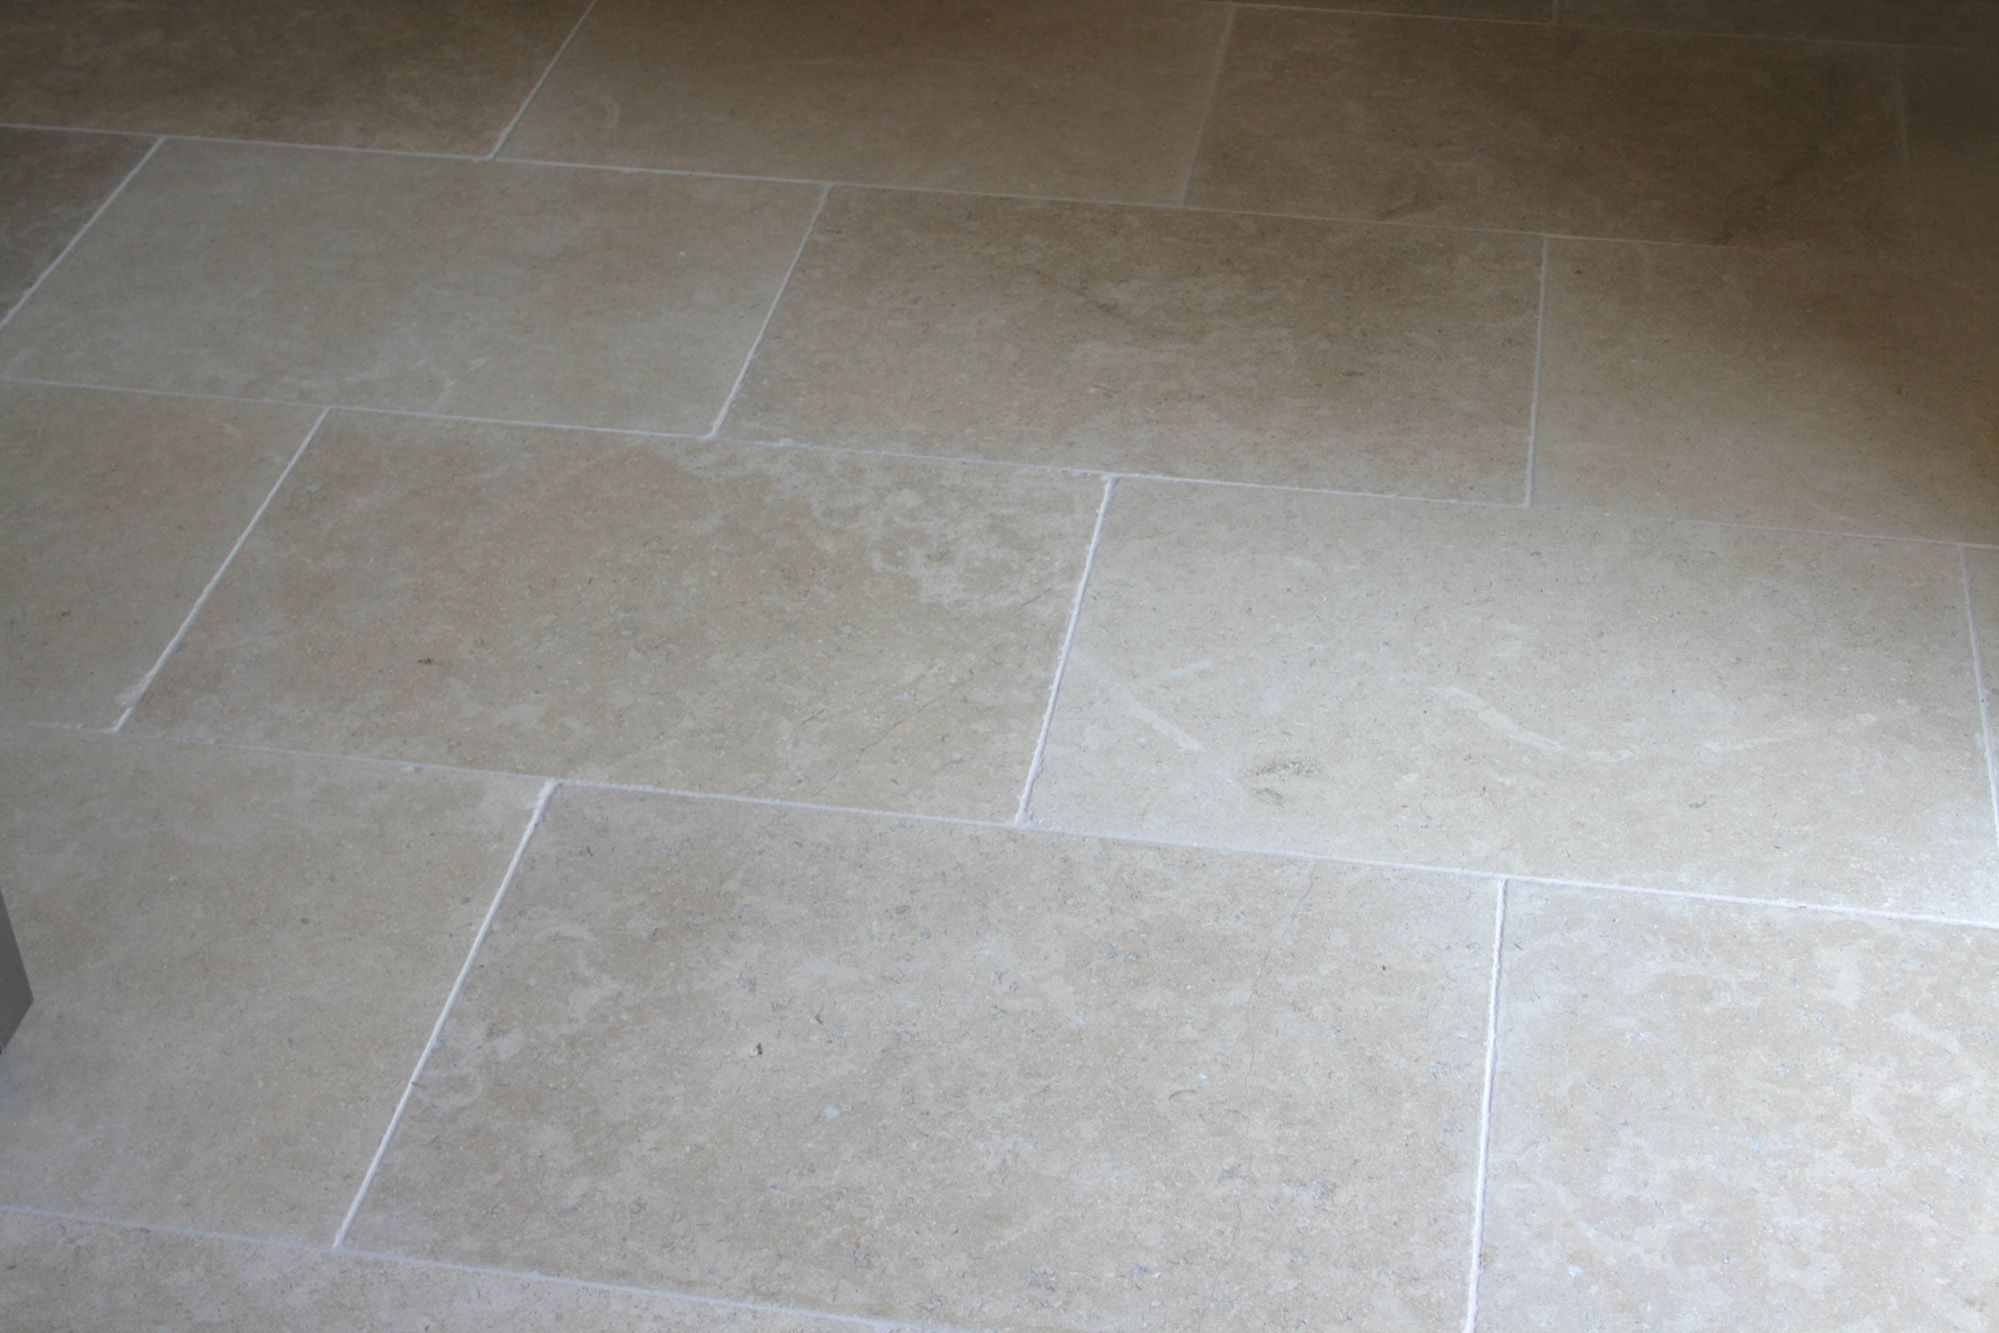 Paris grey tumbled limestone kitchen floor tiles httpwww paris grey tumbled limestone kitchen floor tiles httpnaturalstoneconsultinglimestone paris grey limestone house pinterest paris grey dailygadgetfo Image collections